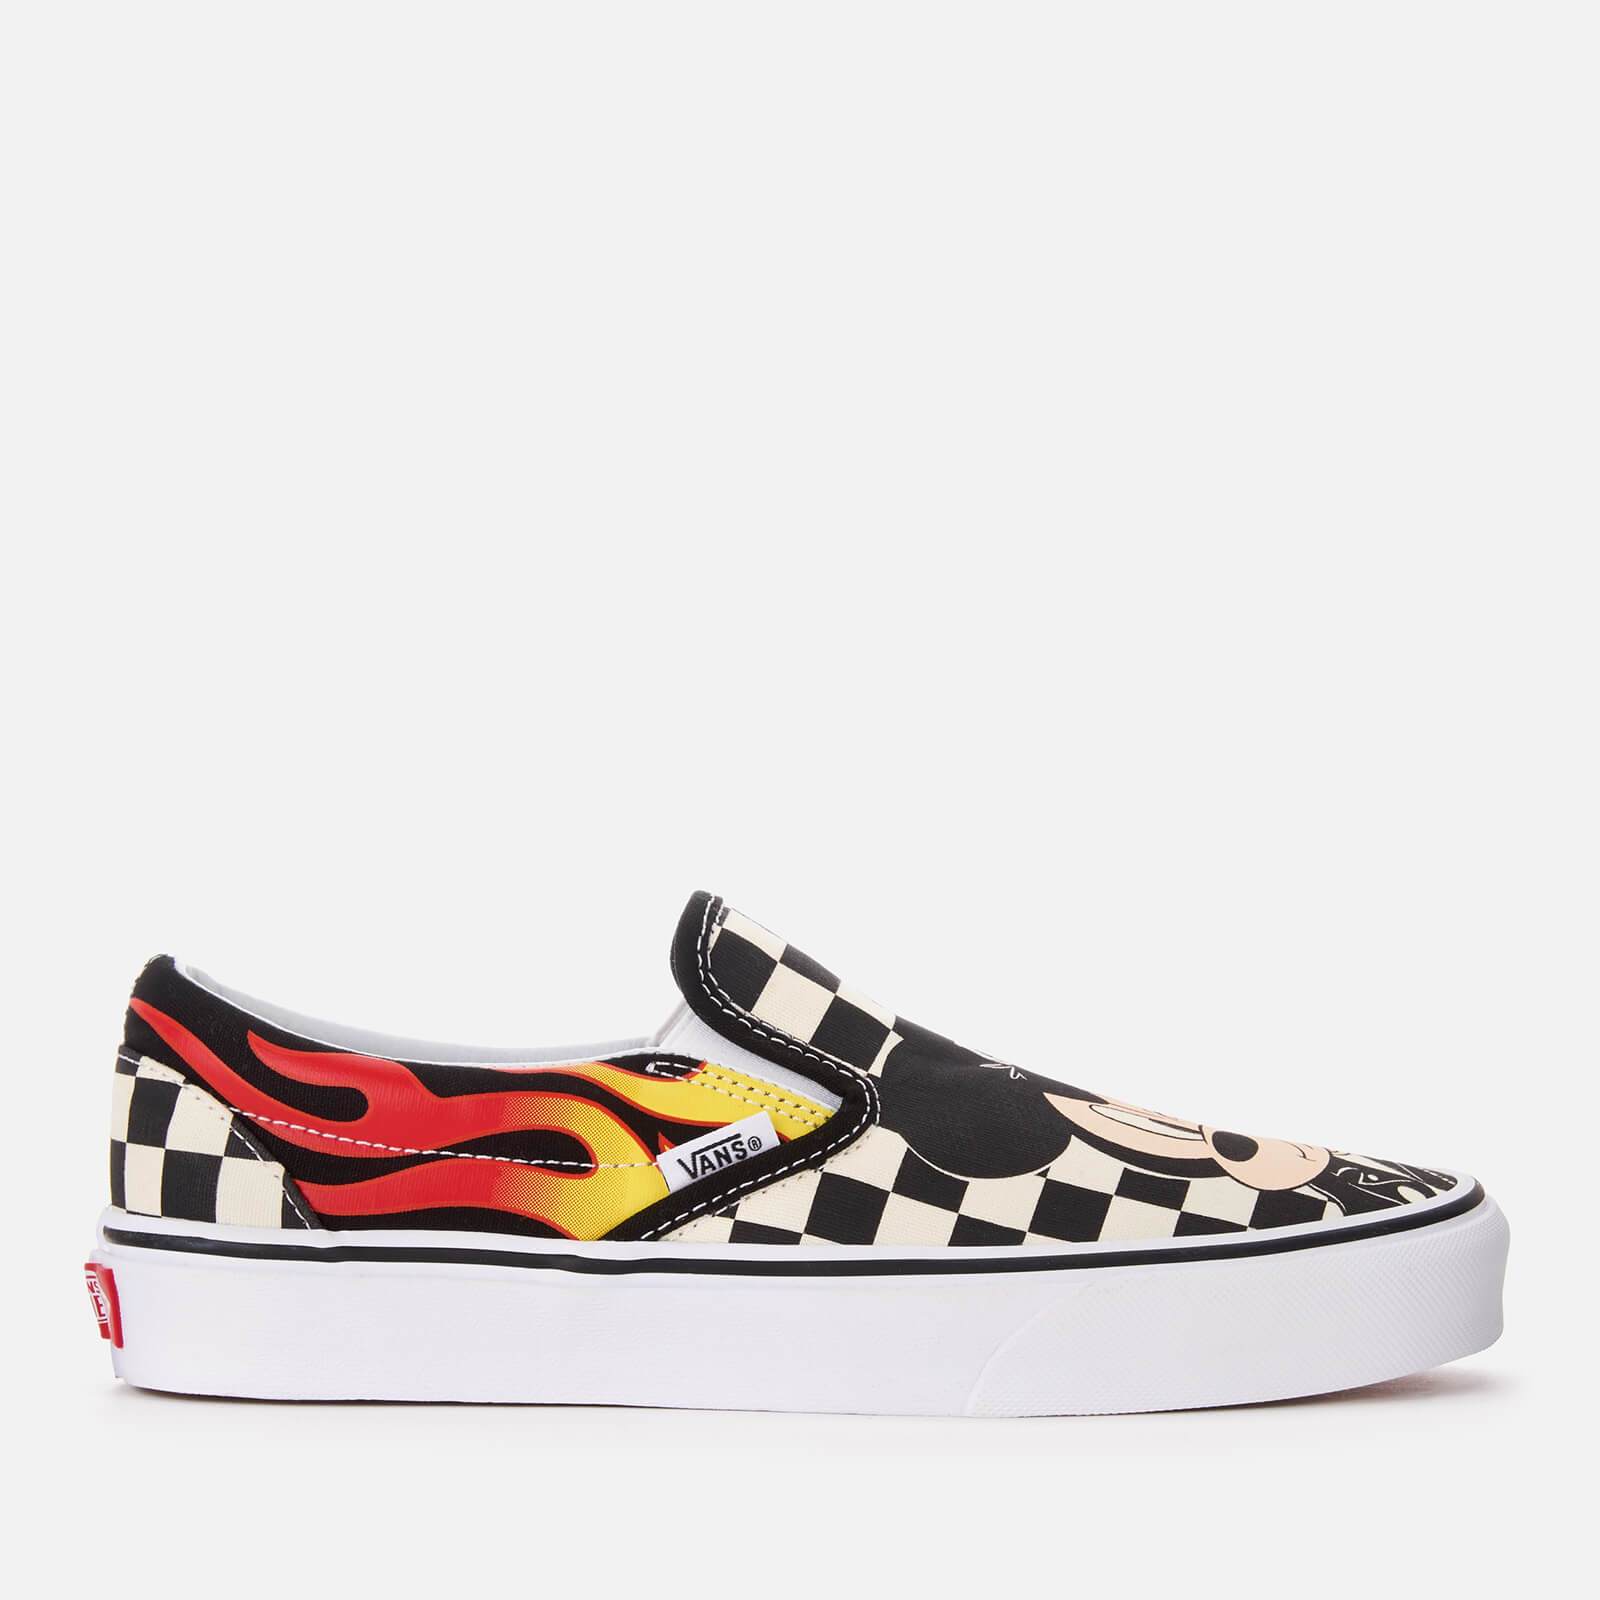 f717e9c42f Vans Women s Disney Mickey   Minnie Classic Slip-On Trainers - Checker Flame  Womens Footwear